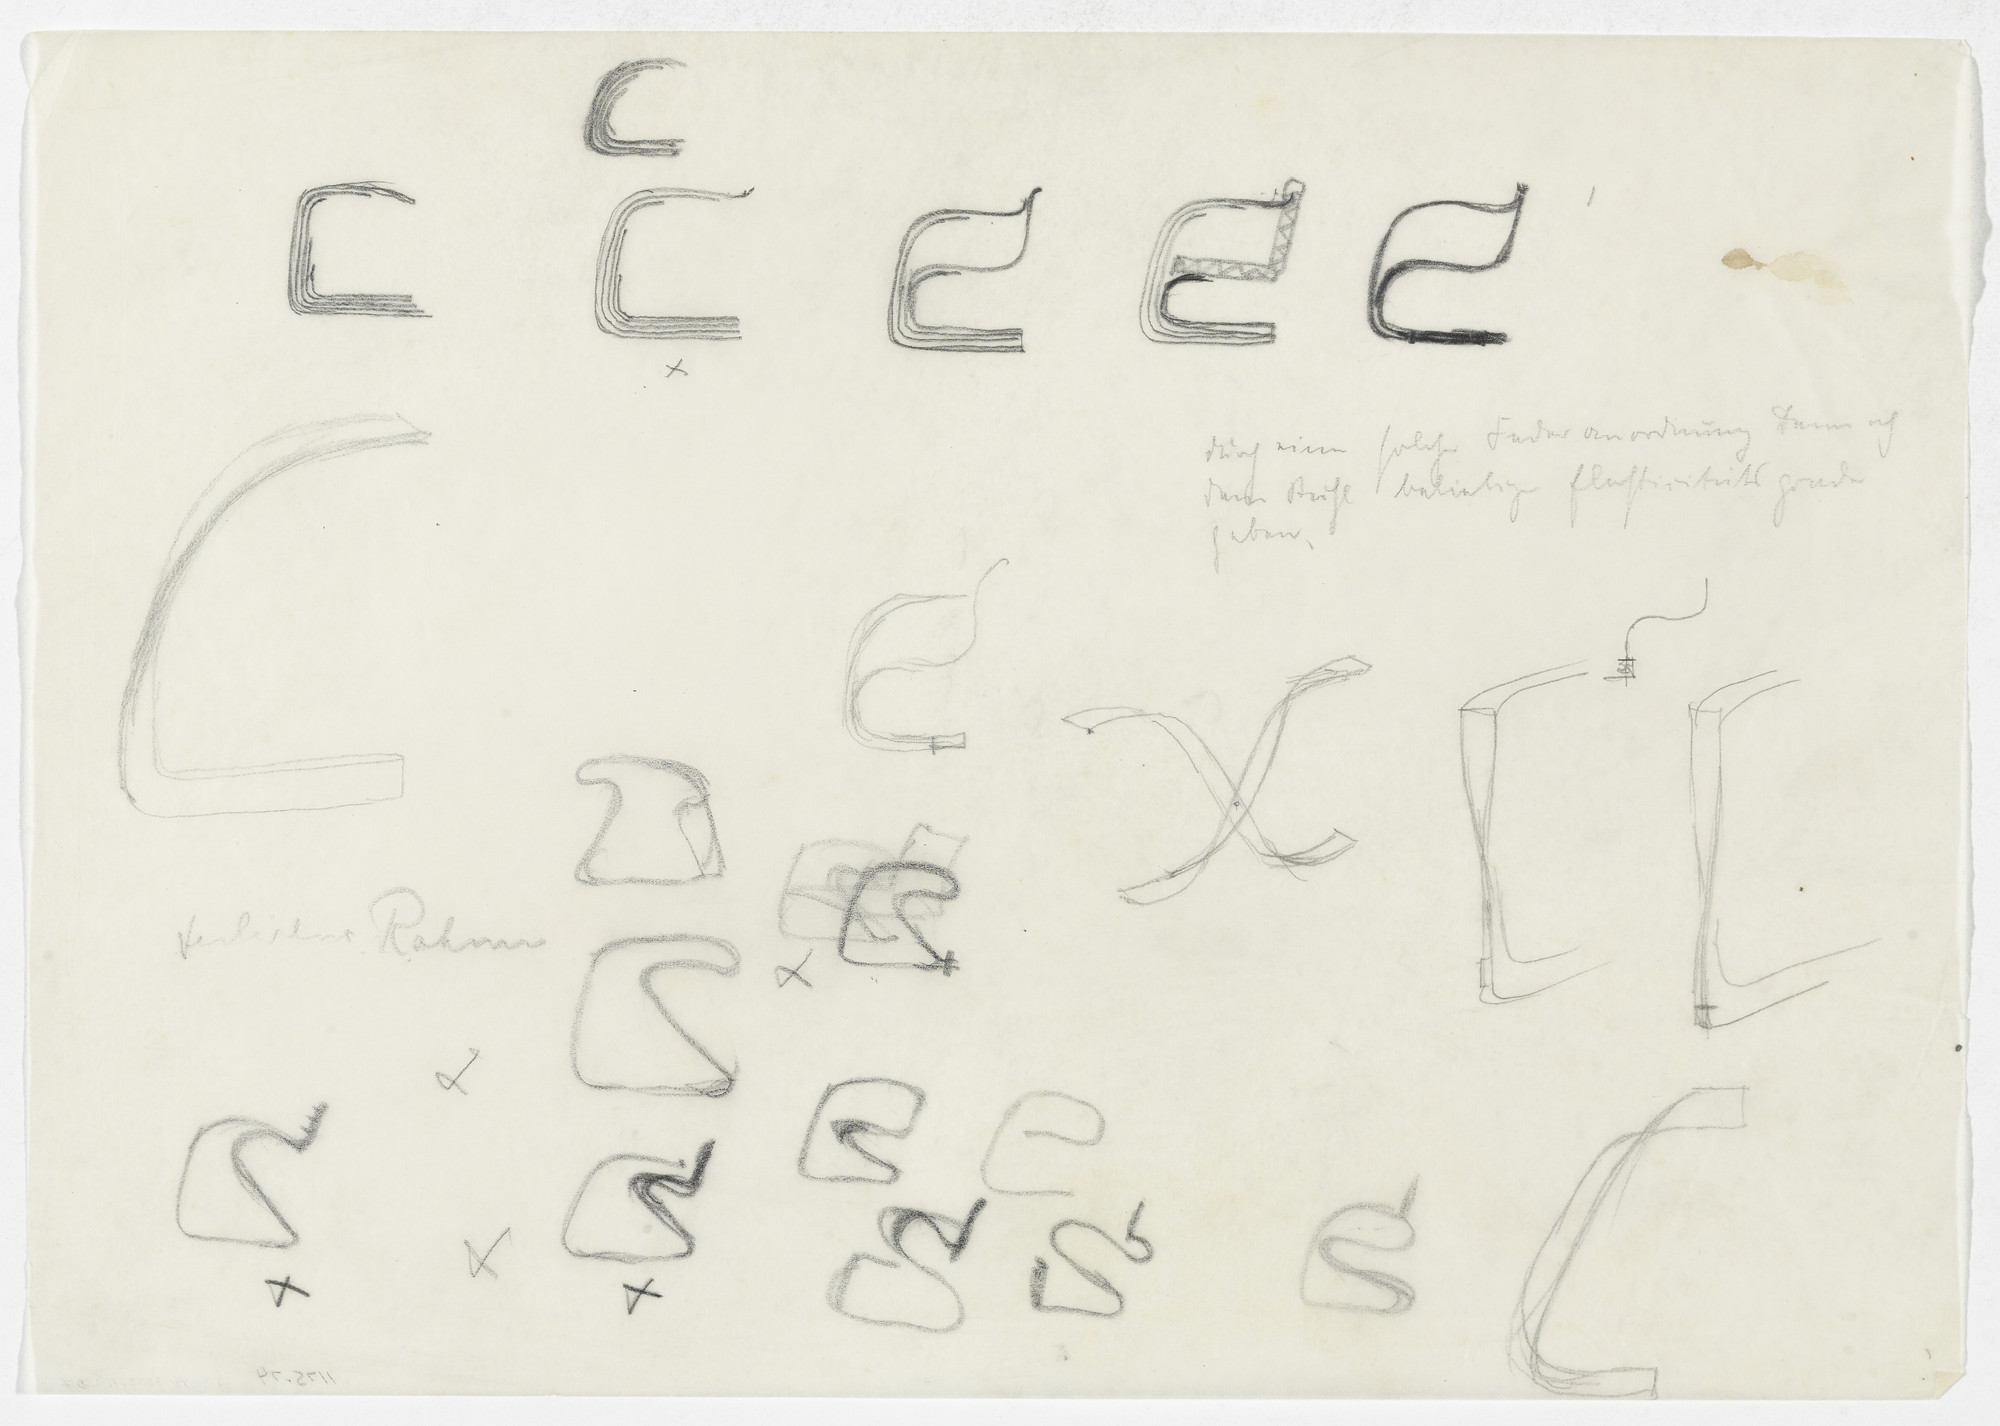 Ludwig Mies van der Rohe. Chair with Arms, Elevation sketches. 1934-1935